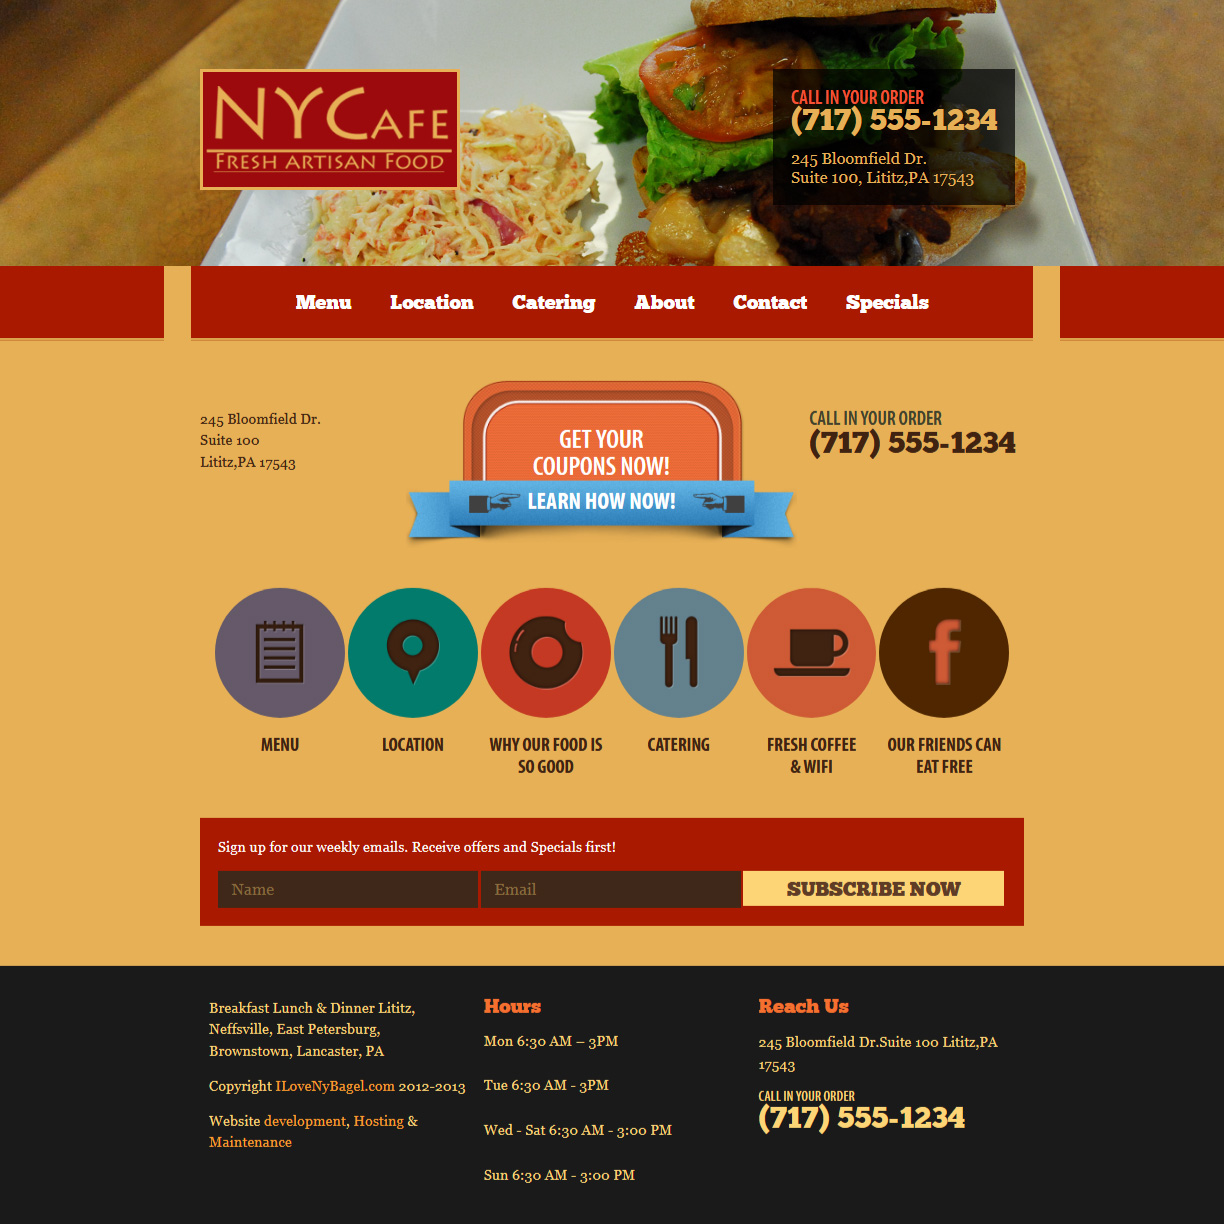 NY Café - coffee shop website design